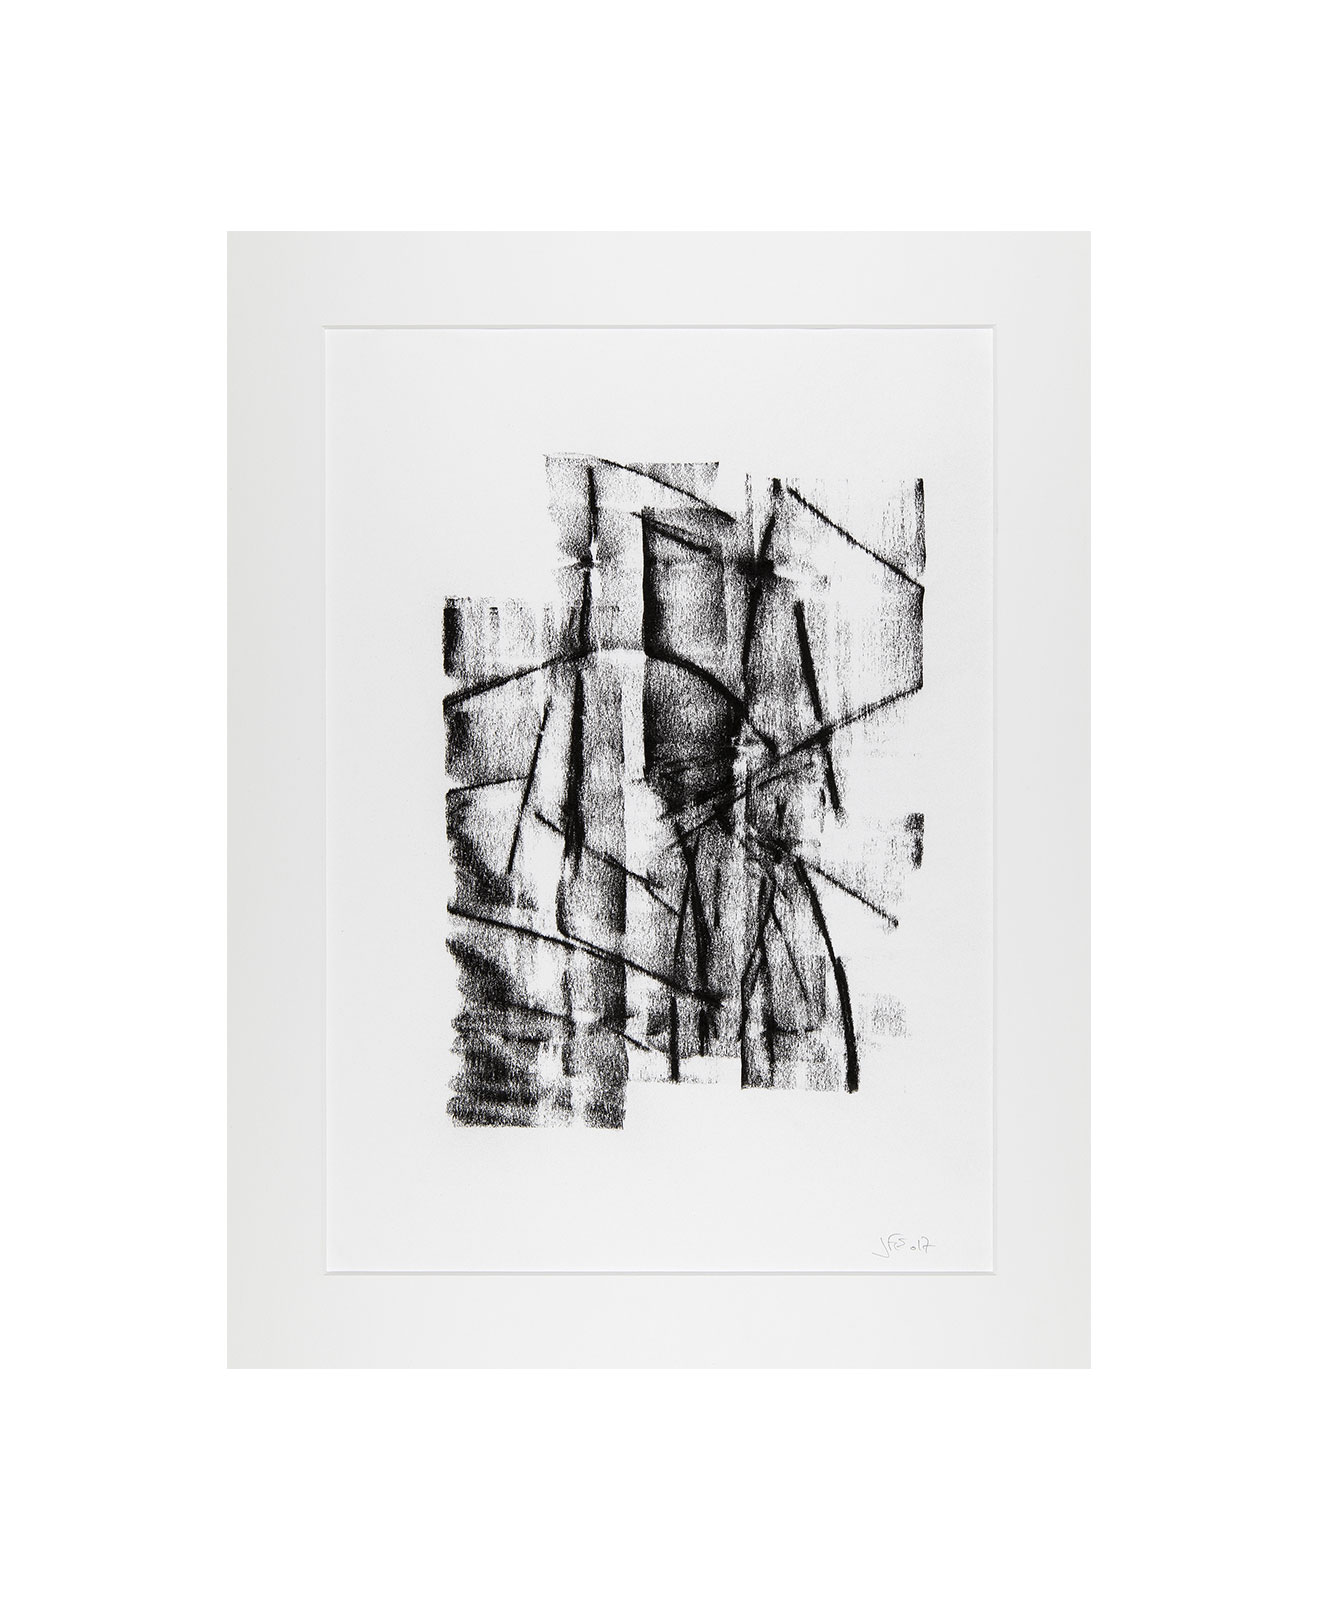 Cha 1.5, Charcoal on paper, black and white artwork, drawing, jf escande, contemporary art